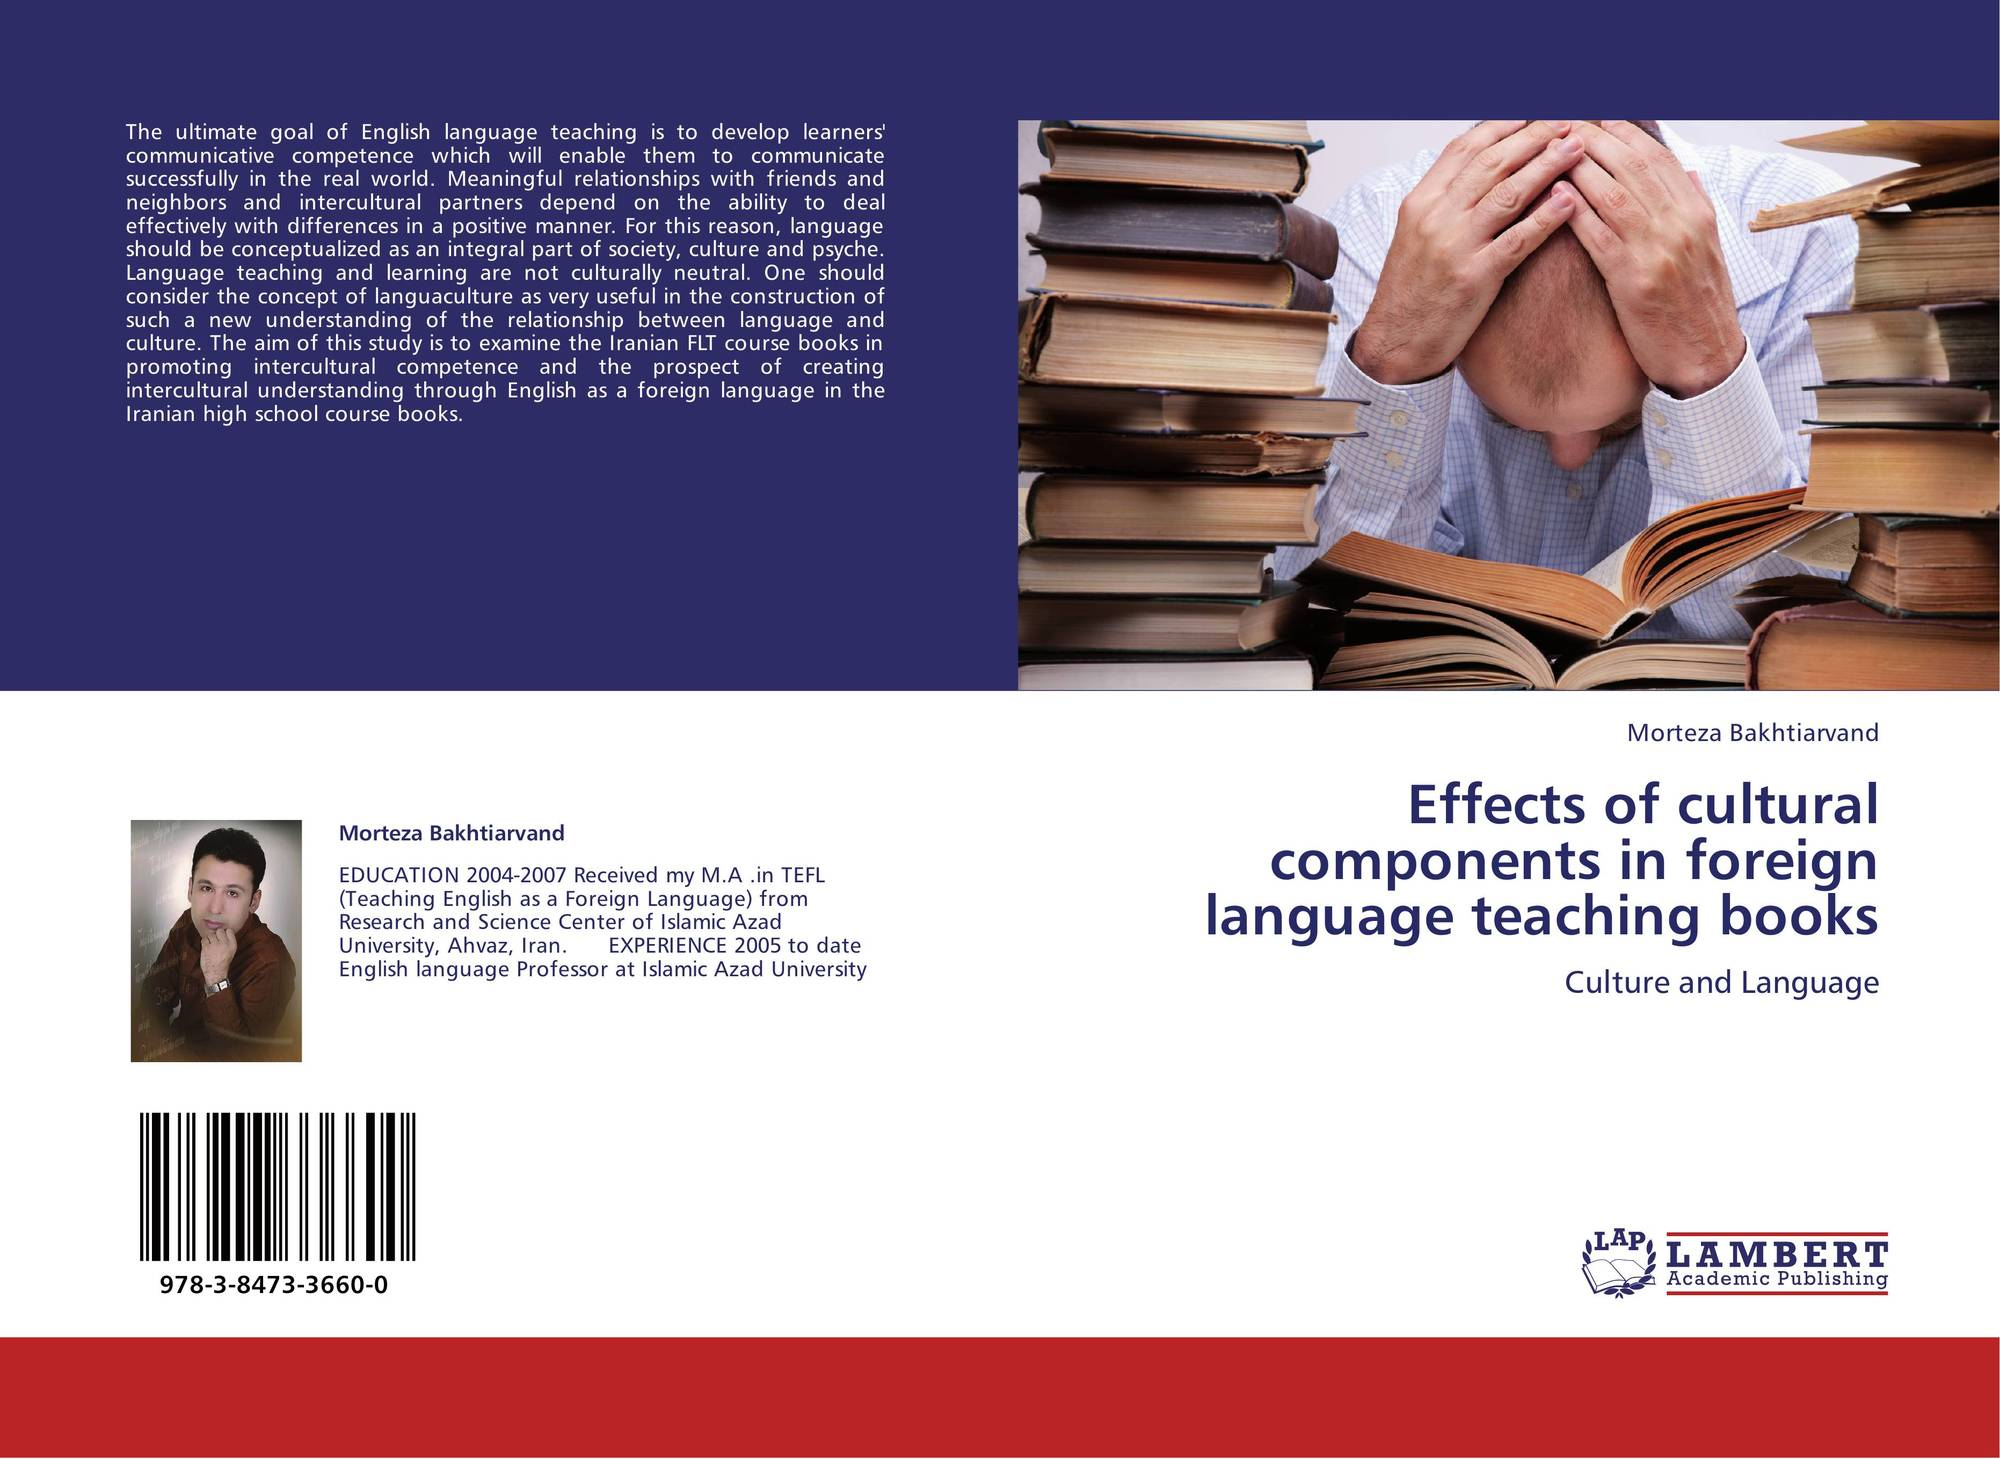 thesis on teaching methods The push-in teaching method to a norwegian school however, there are some implications as only one norwegian school was the subject of this thesis, and the results are therefore a.